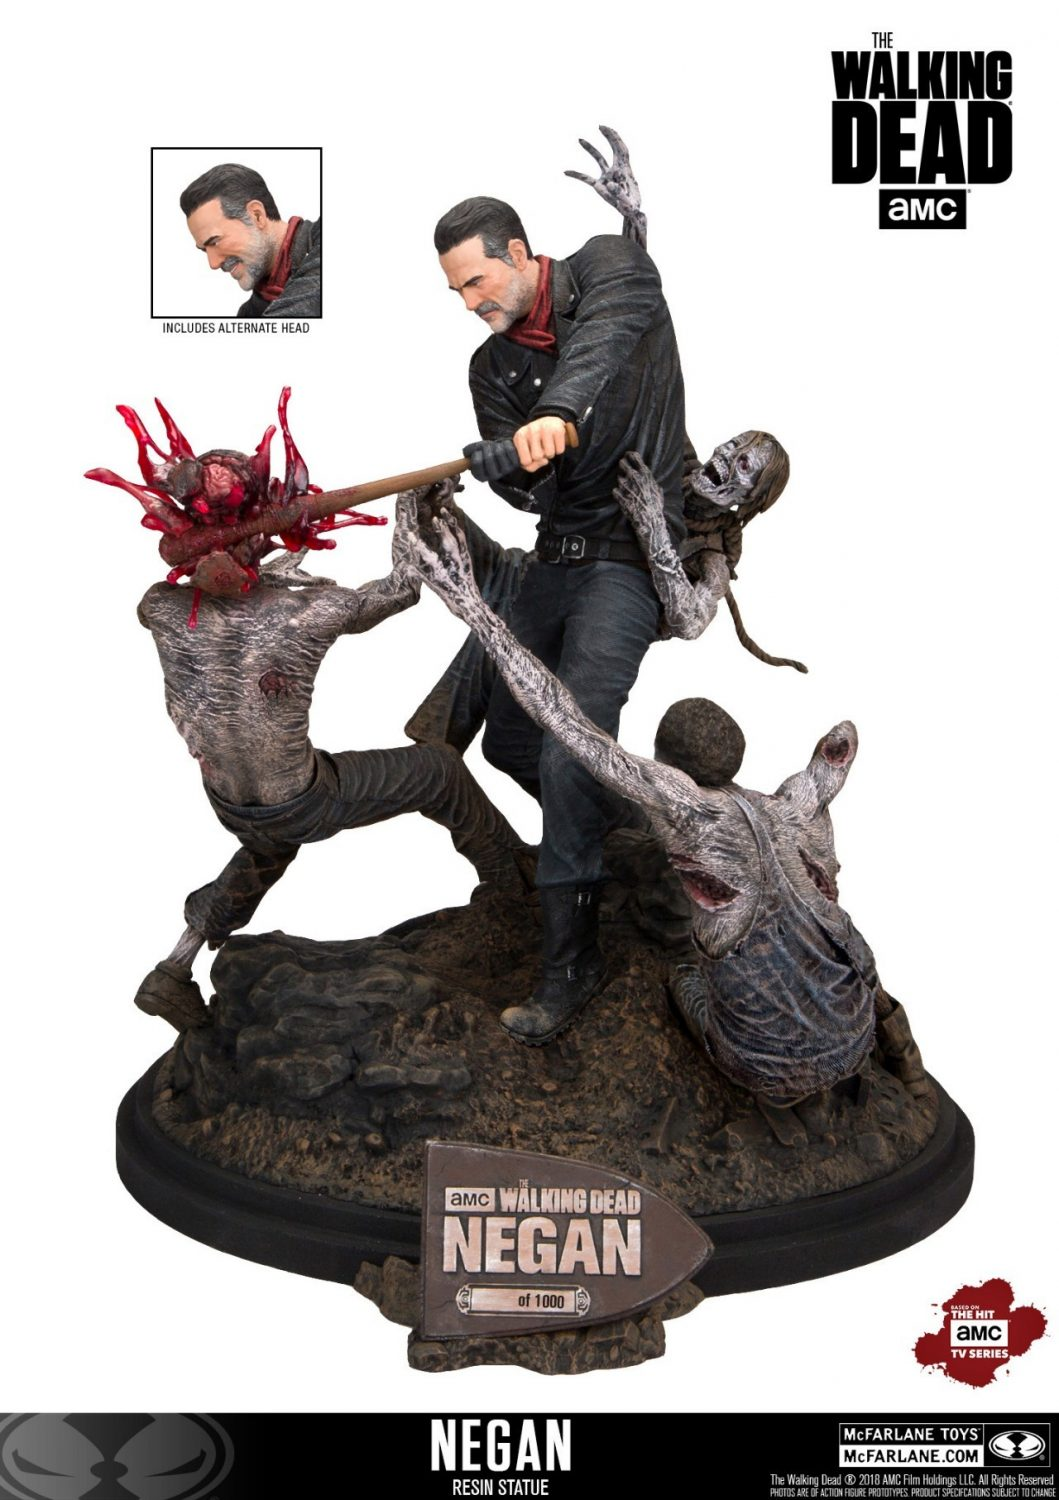 McFarlane Toys The Walking Dead Negan Resin Statue Available Now